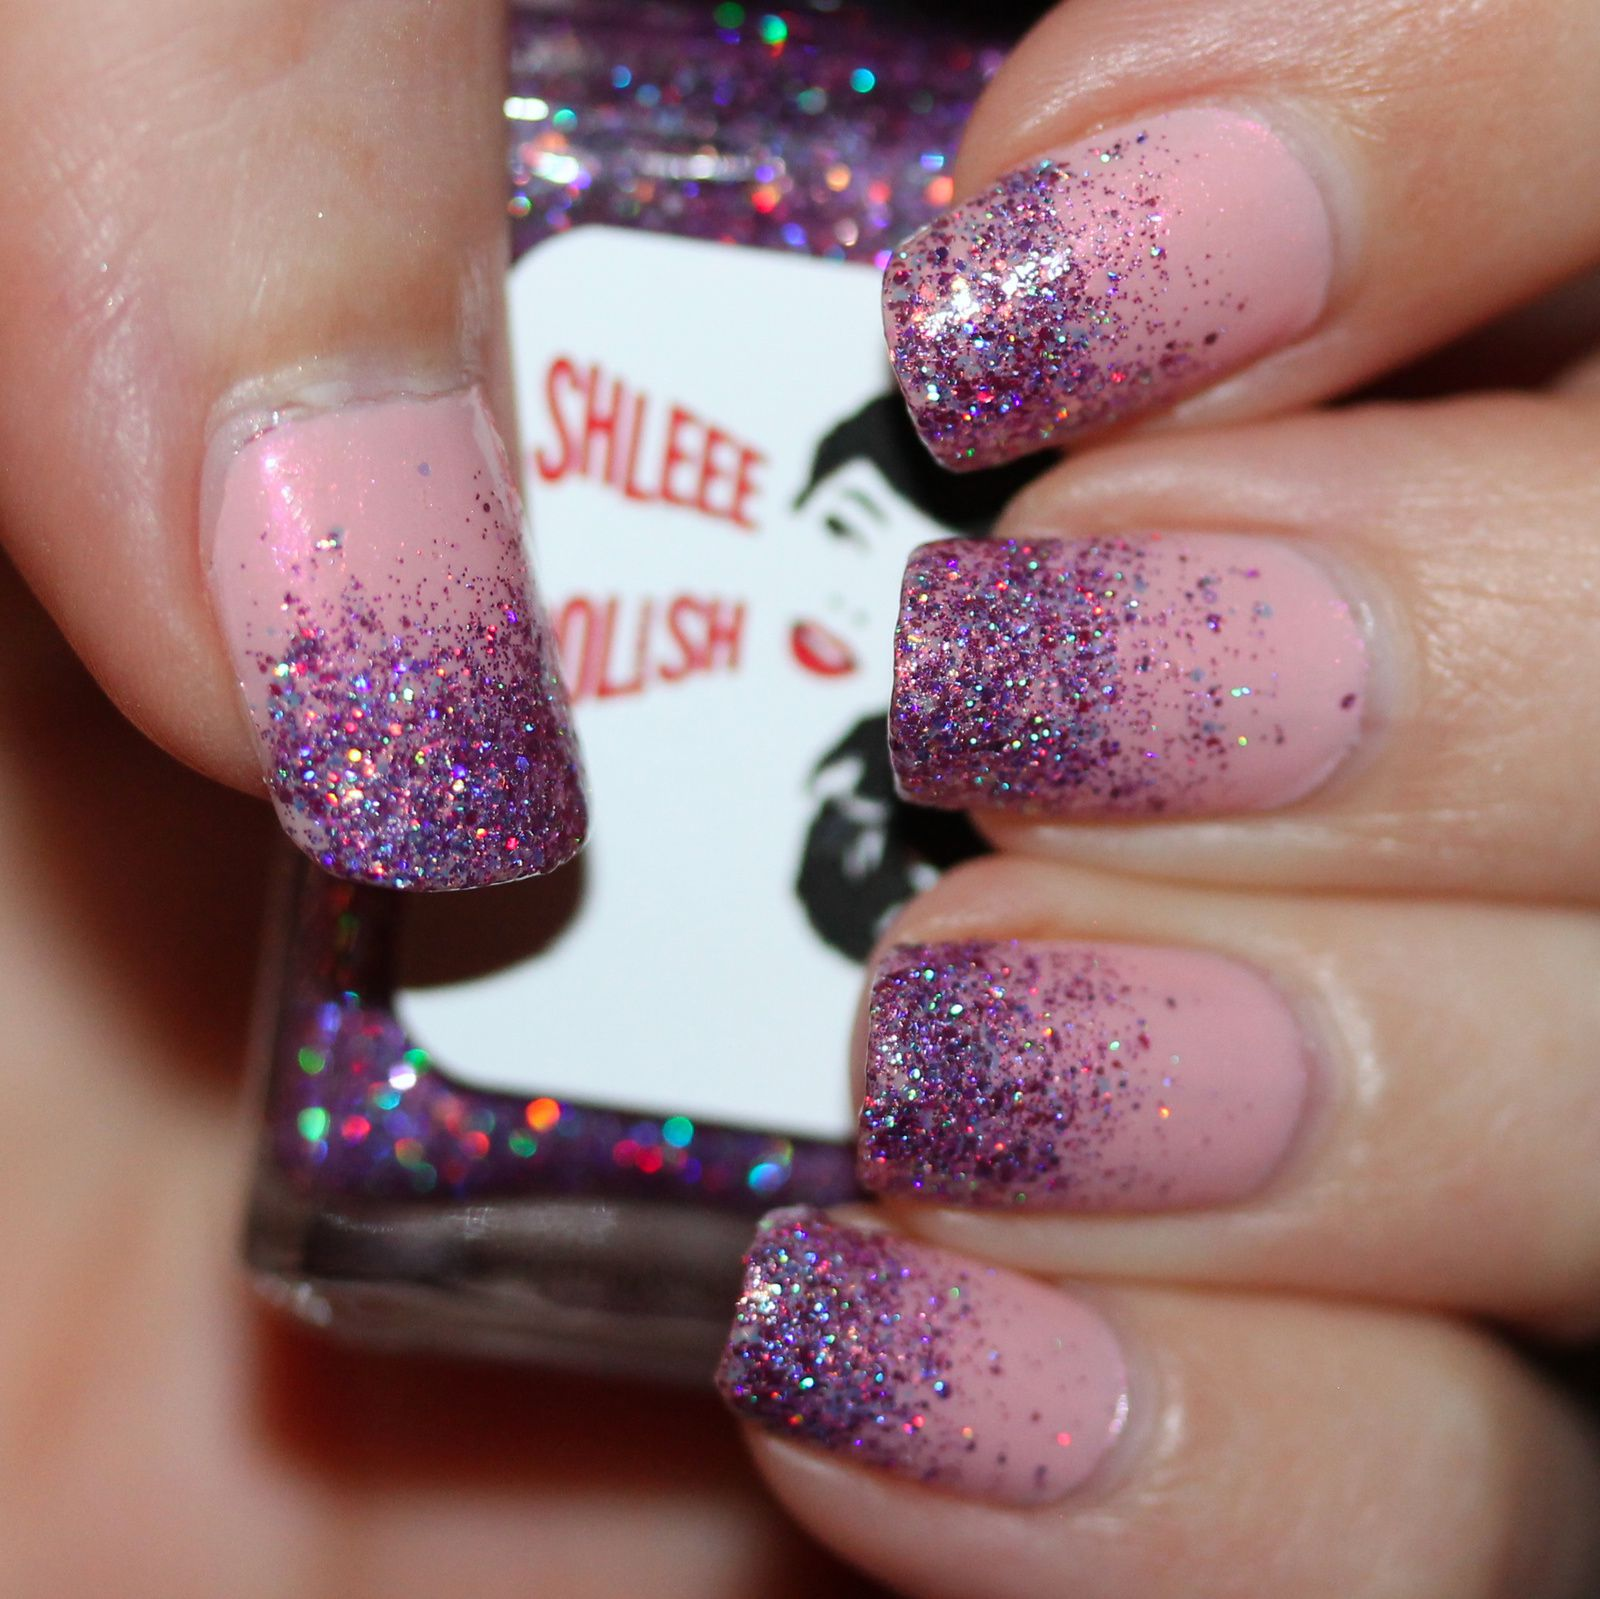 Essie Protein Base Coat / China Glaze Eat, Pink, Be Merry / Shleee Polish Orchid Fire / Poshe Top Coat